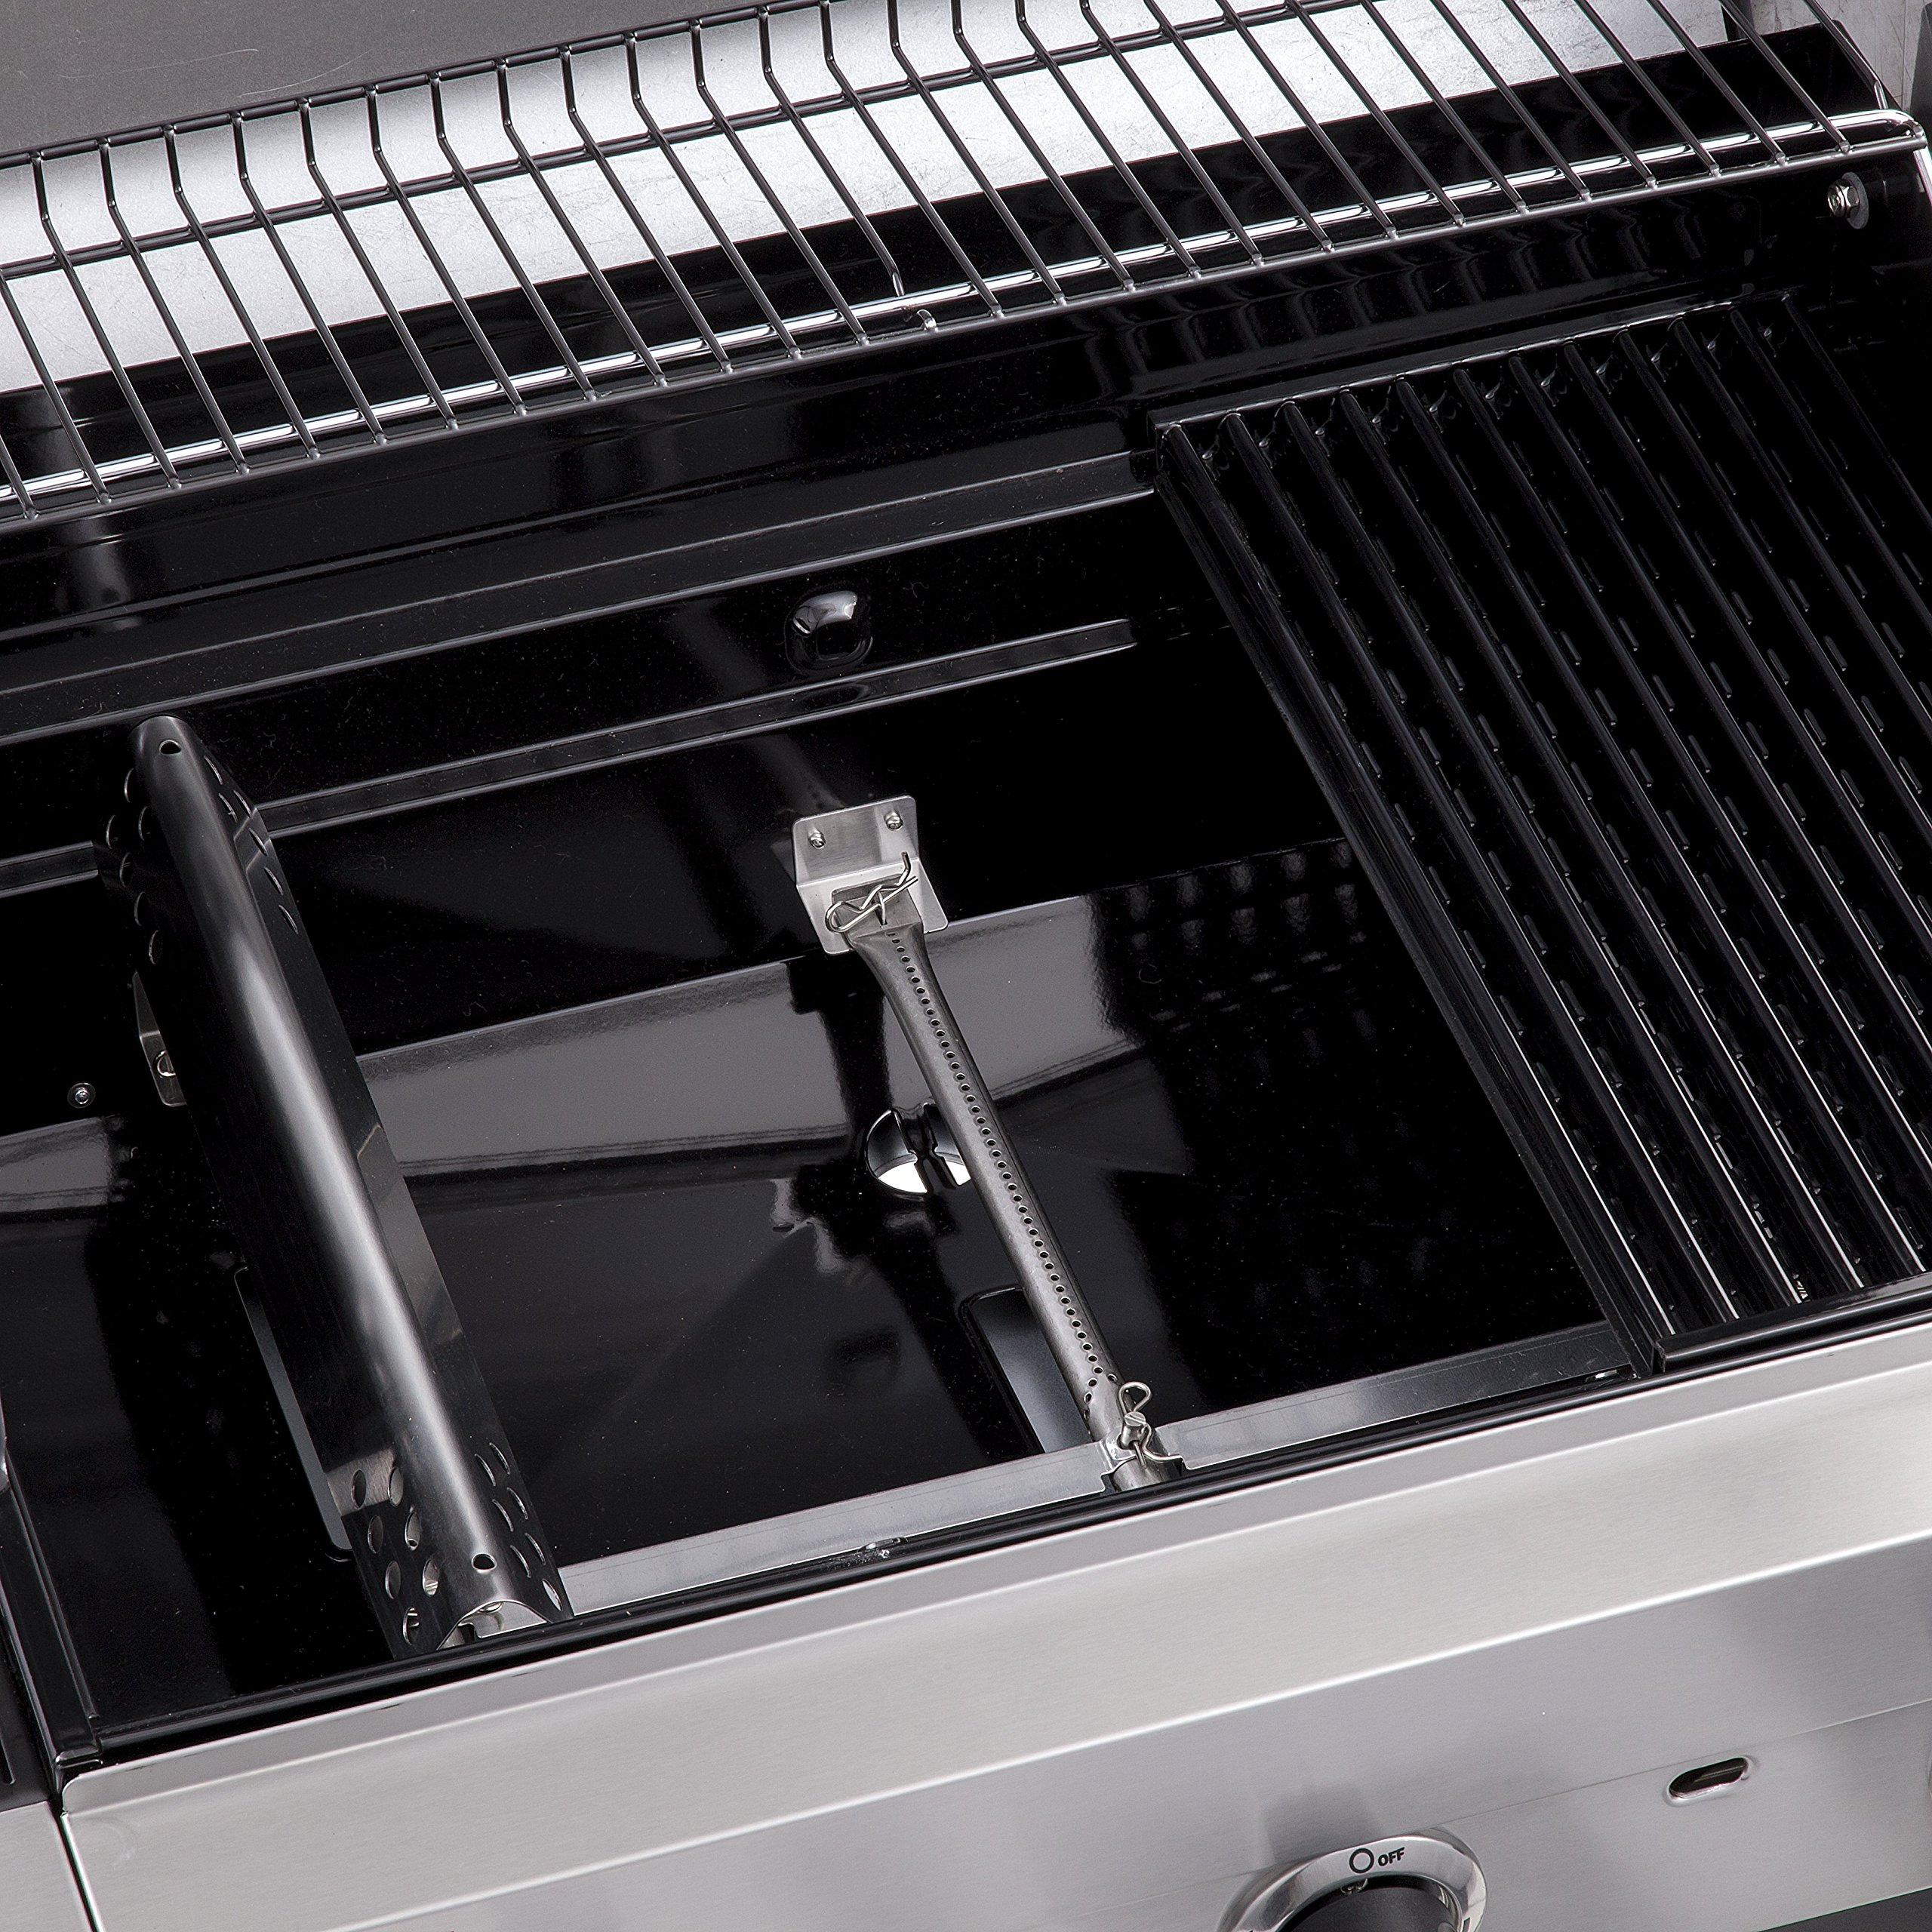 Char-Broil Performance TRU-Infrared 450 3-Burner Cabinet Liquid Propane Gas Grill by Char-Broil (Image #5)